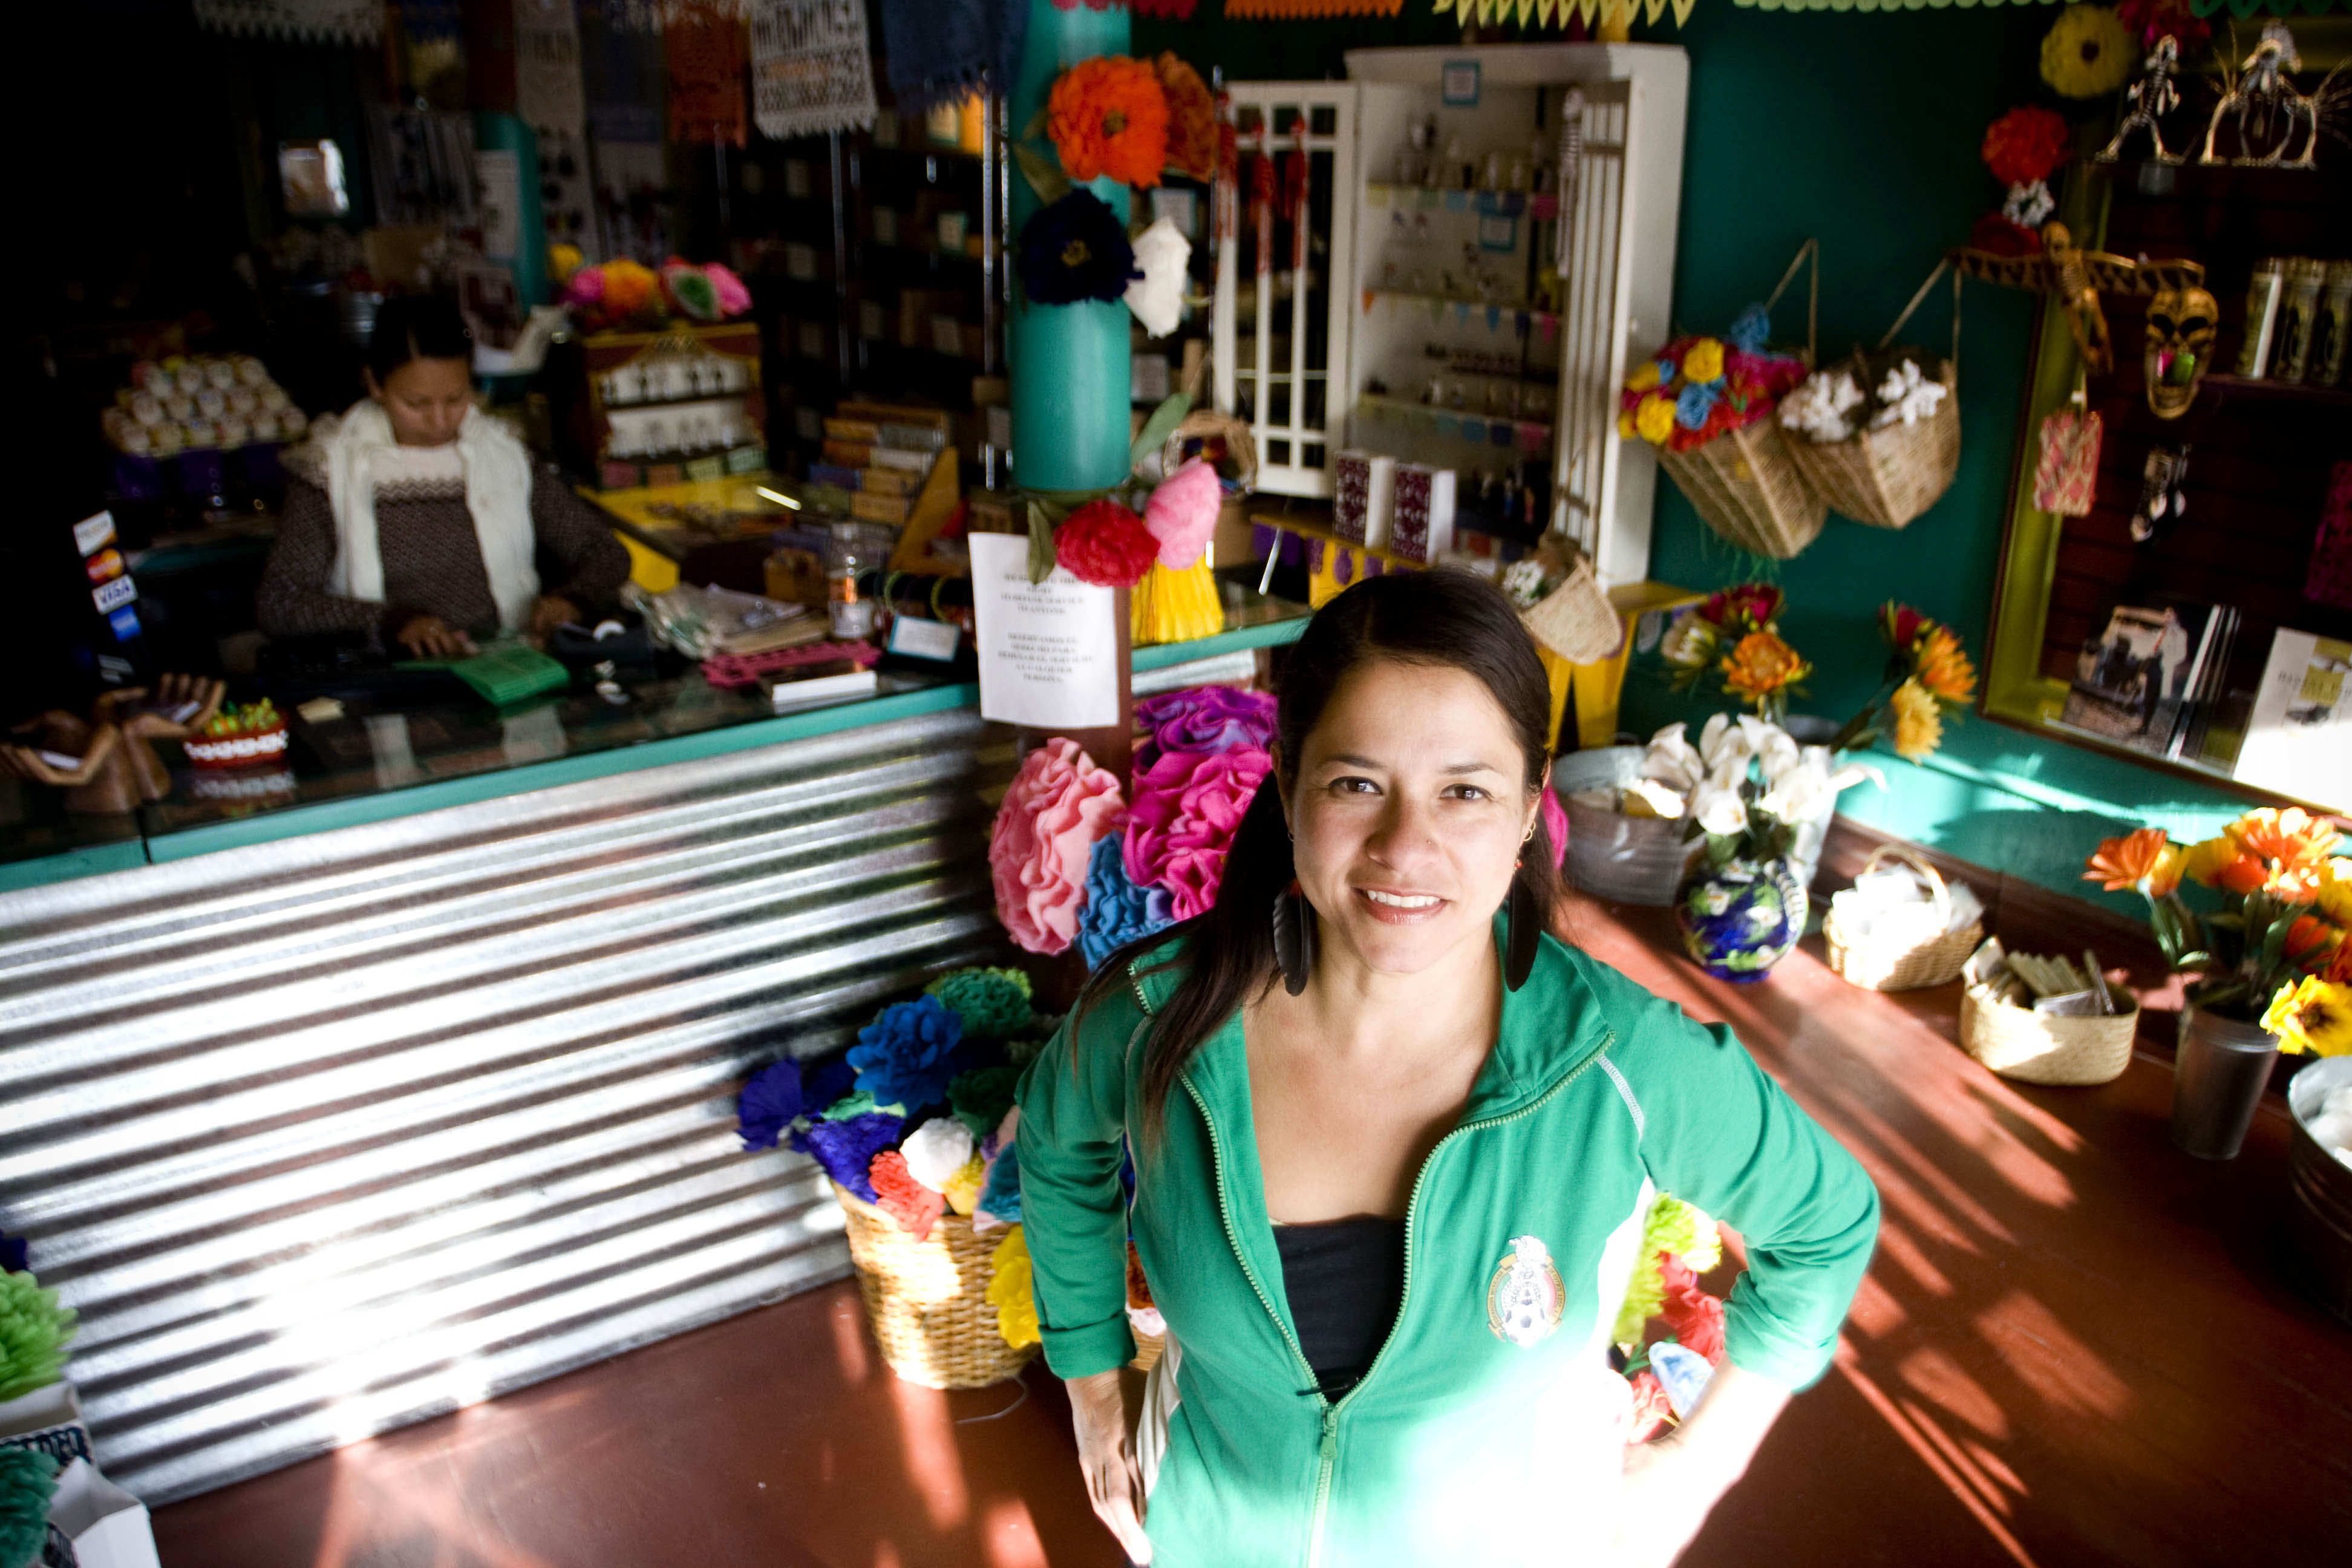 Nancy Charraga stands at the main entrance of her store, Casa Bonampak, located in the Mission District.